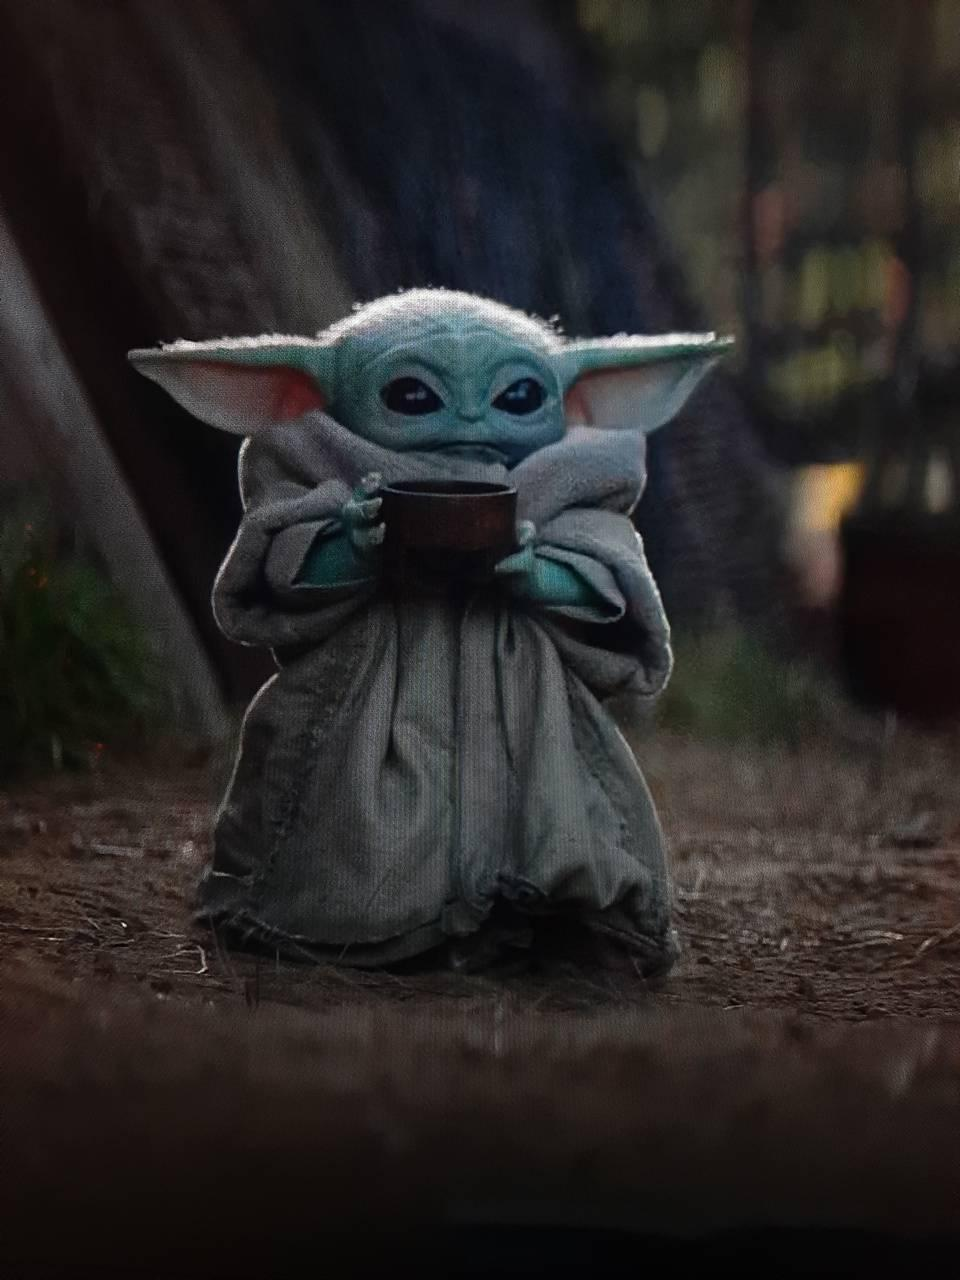 Cute Baby Yoda Wallpapers - Wallpaper Cave